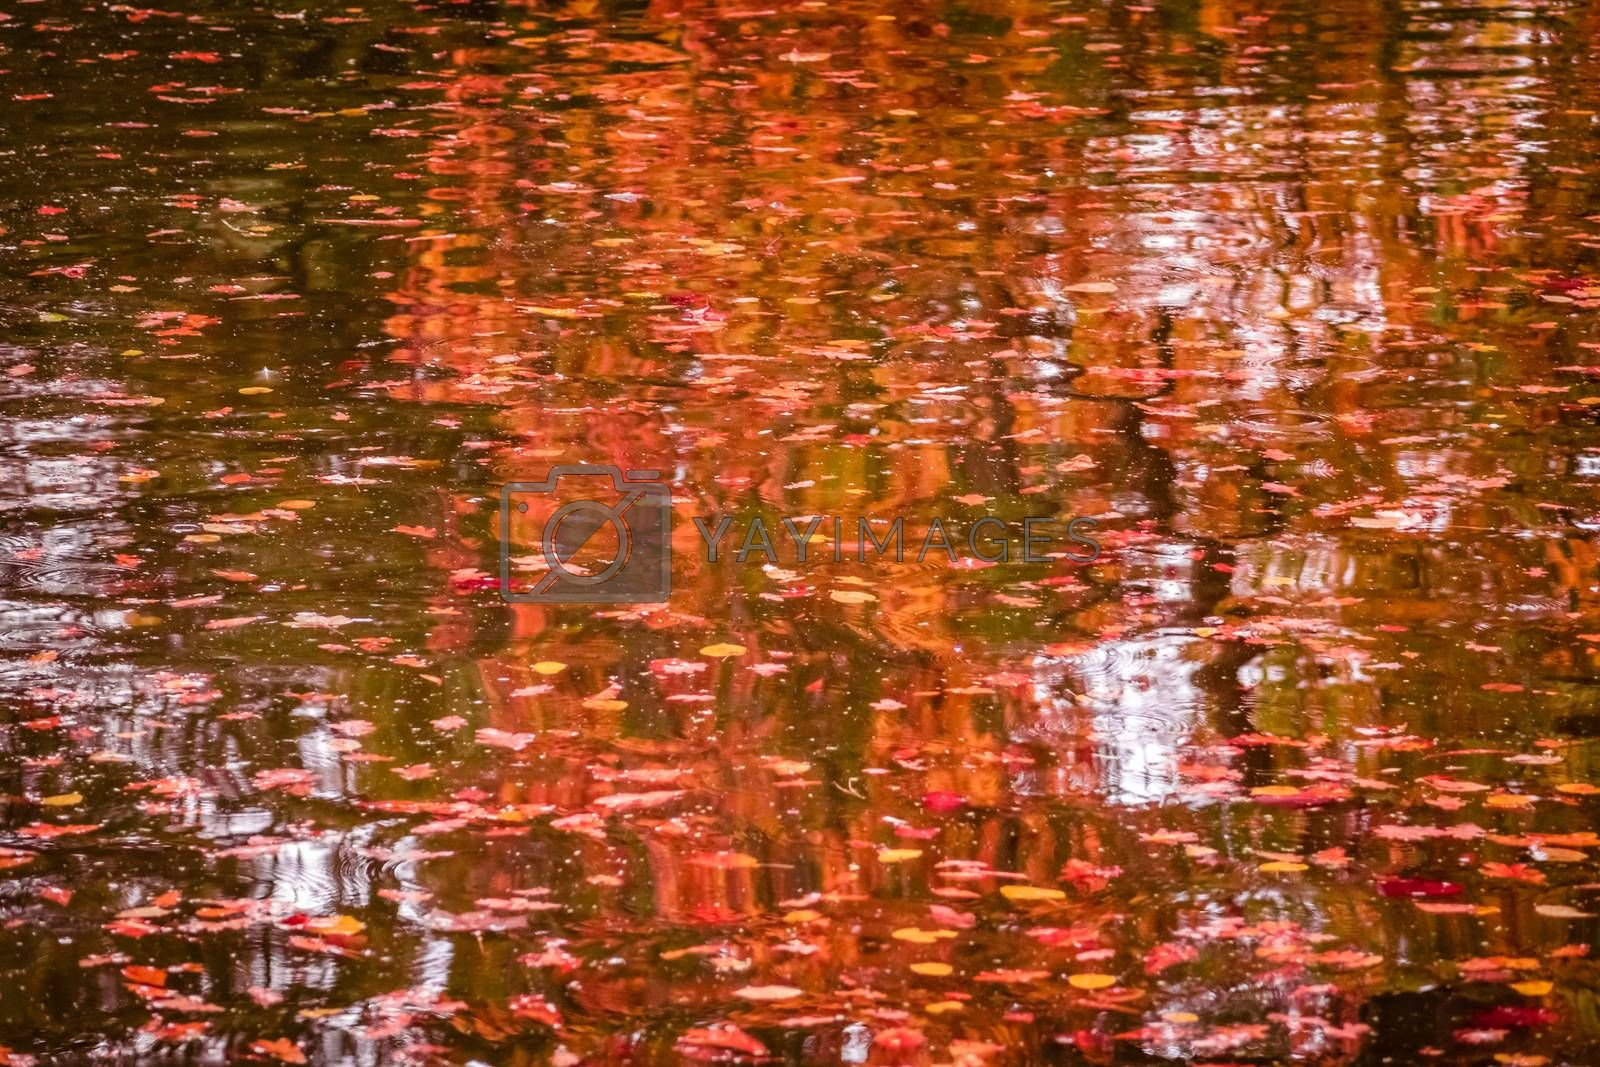 Red and purple leaves on the water surface on a lake in autumn